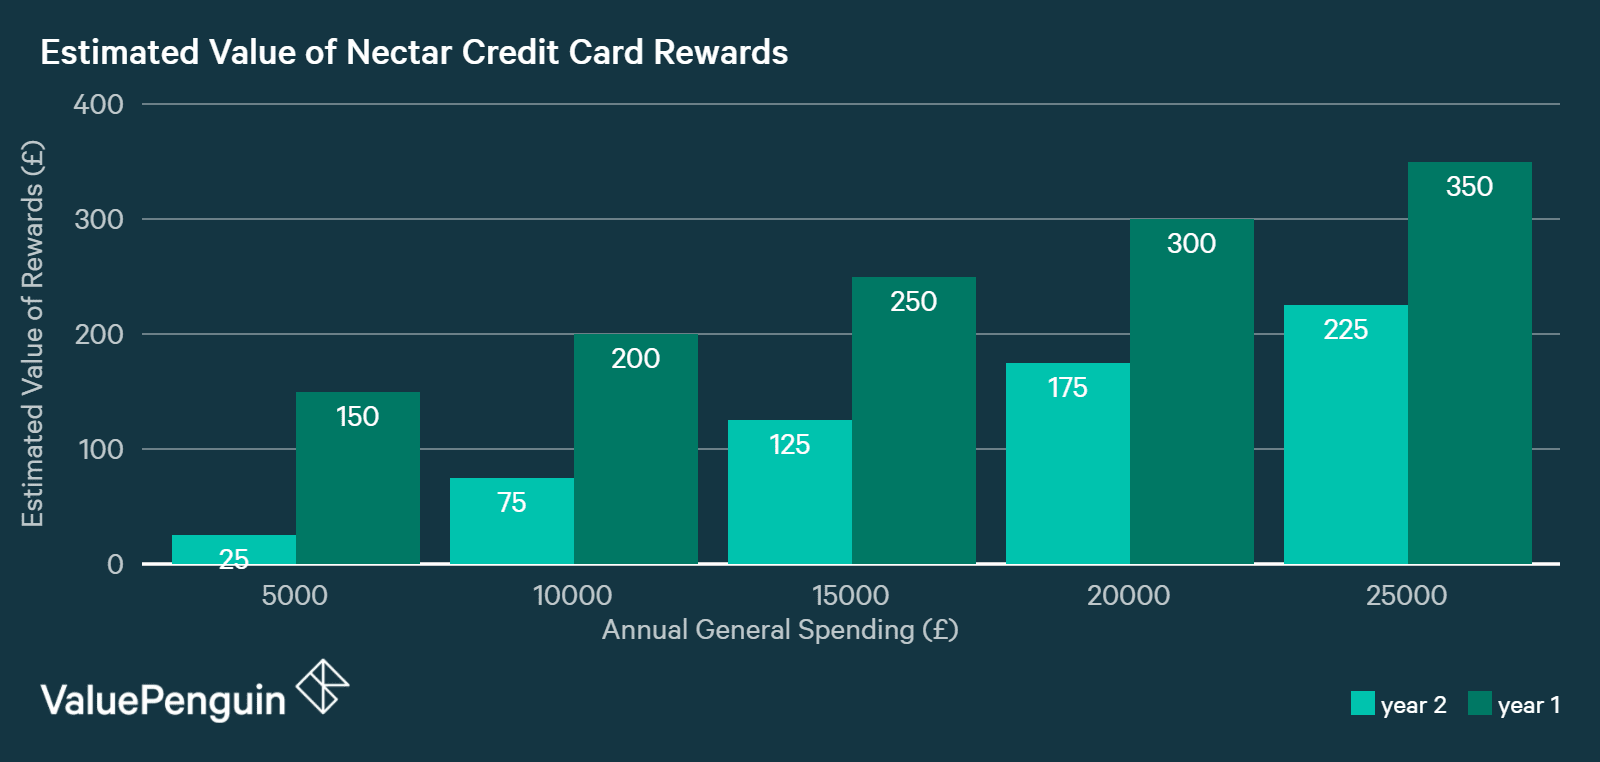 chart showing nectar credit card rewards by level of annual spending